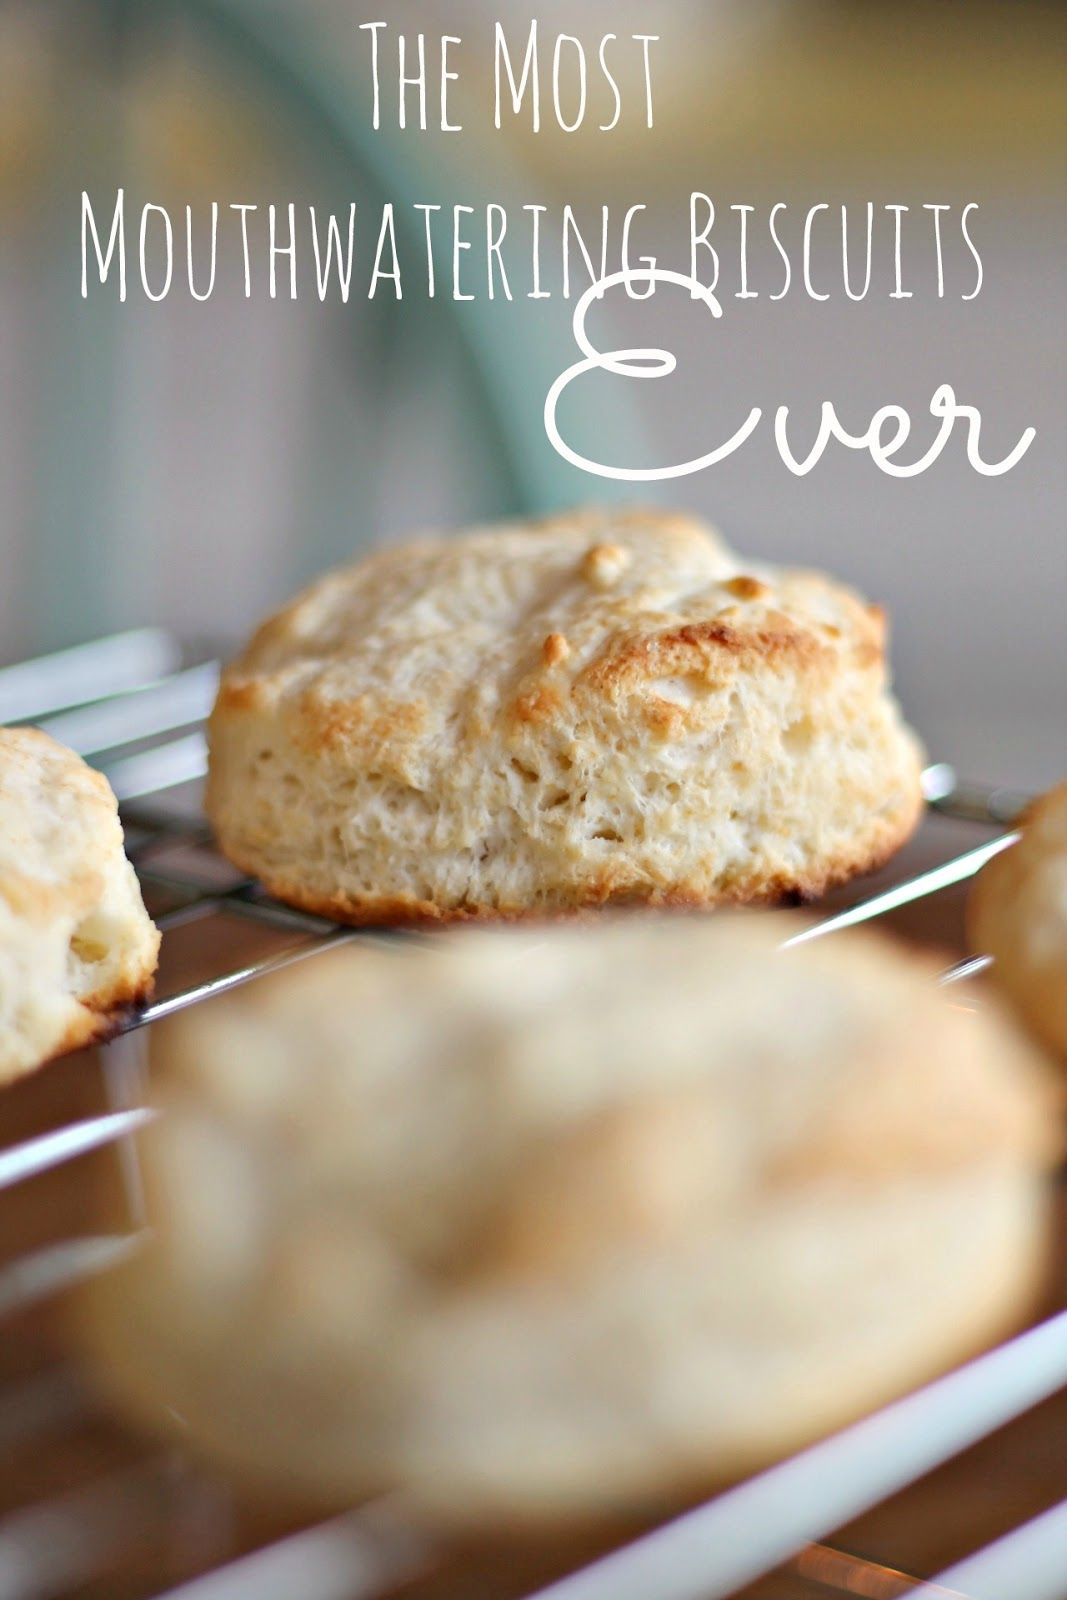 The Most Mouthwatering Biscuits Ever Homemade Bread Food The Joy Of Baking